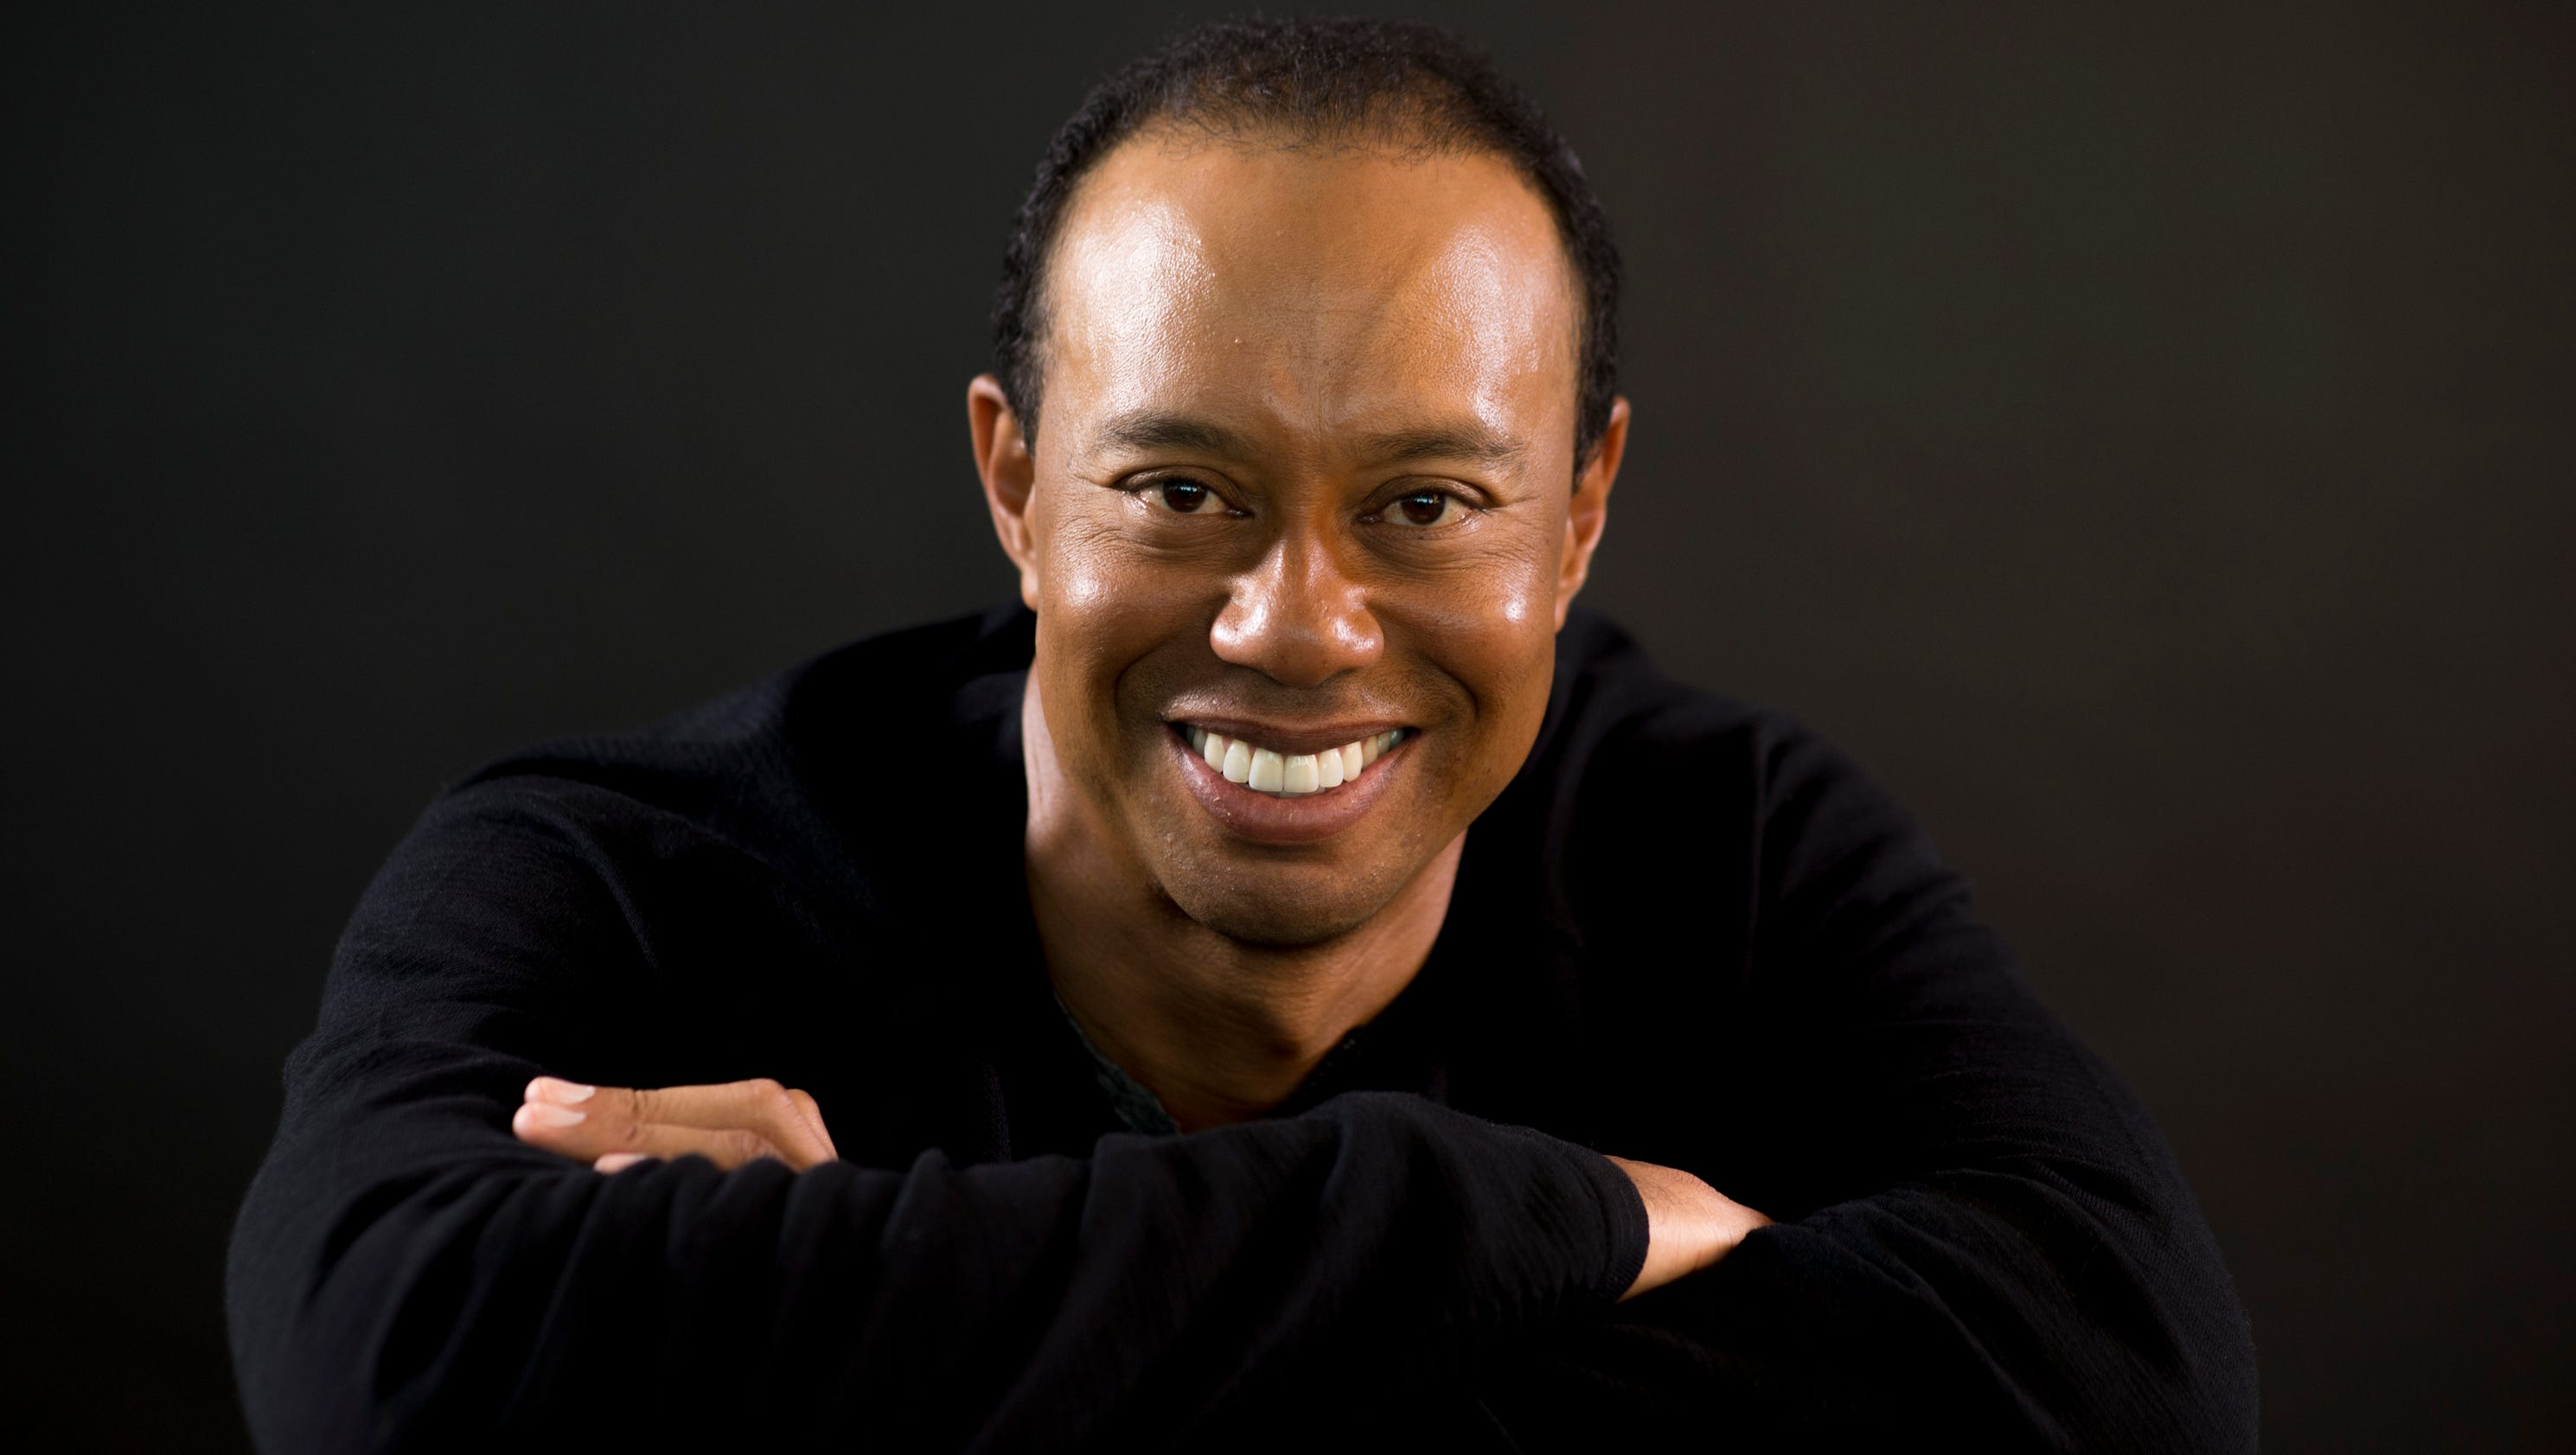 tiger woods - photo #25